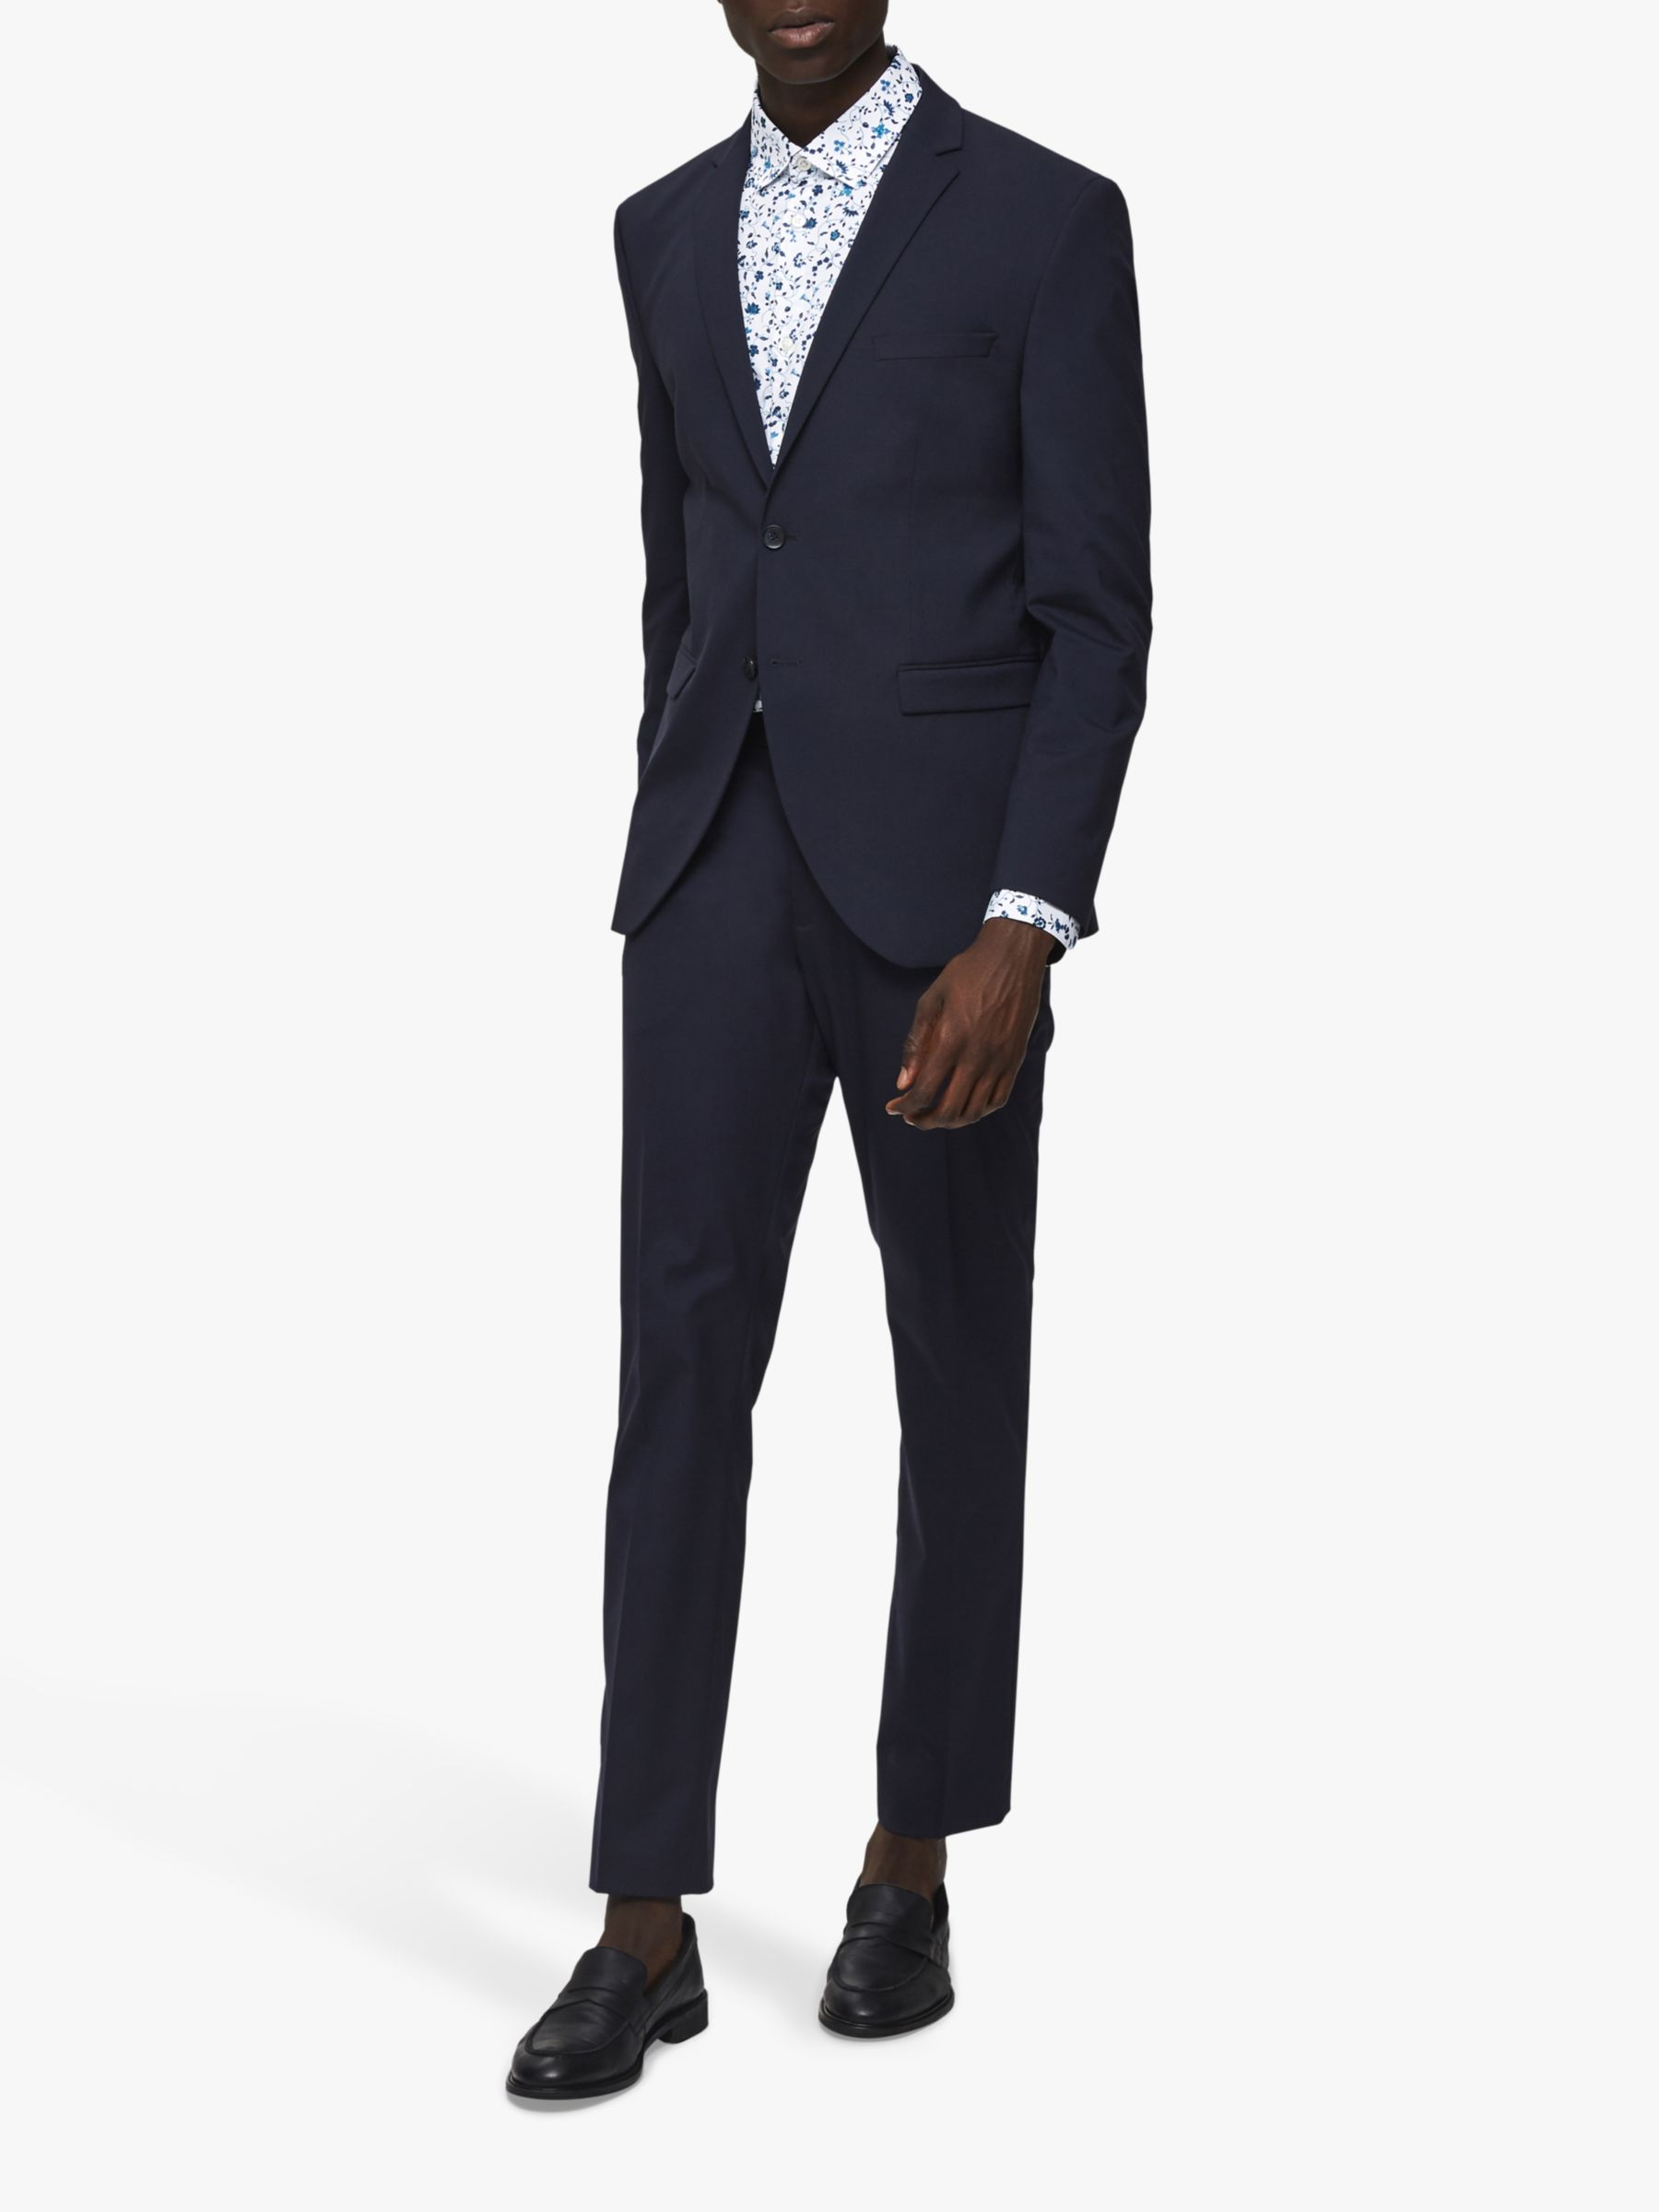 Selected Homme SELECTED HOMME Slim Fit Suit Jacket, Navy